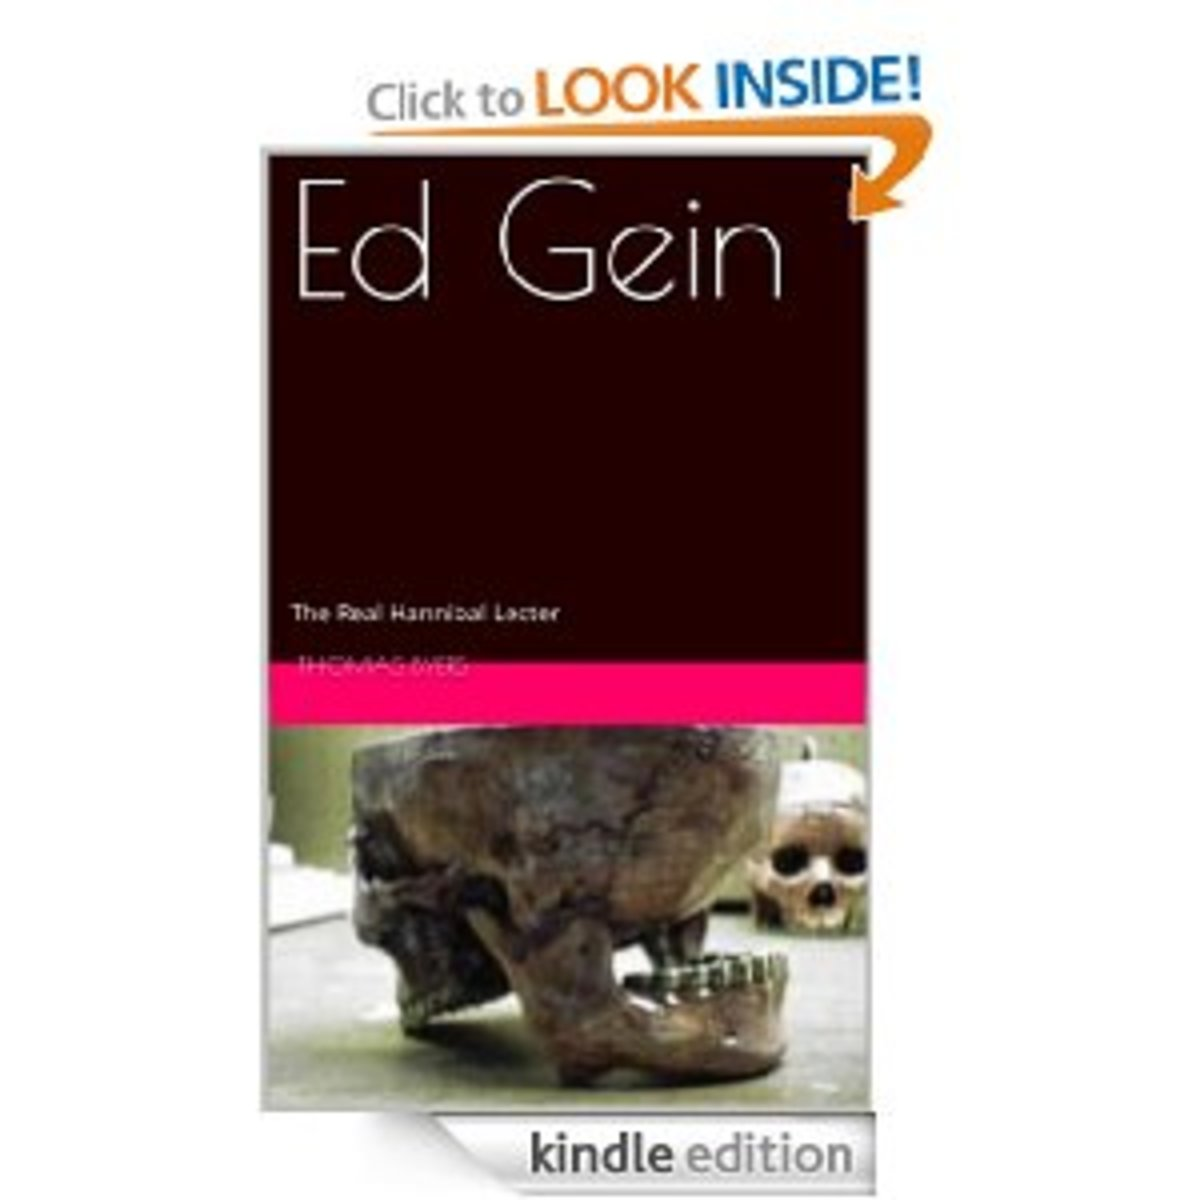 I recently completed my book on Ed Gein, The Real Hannibal Lecter and you can purchase it and read it at Amazon for only 99 cents. Just click the below link to check it out.